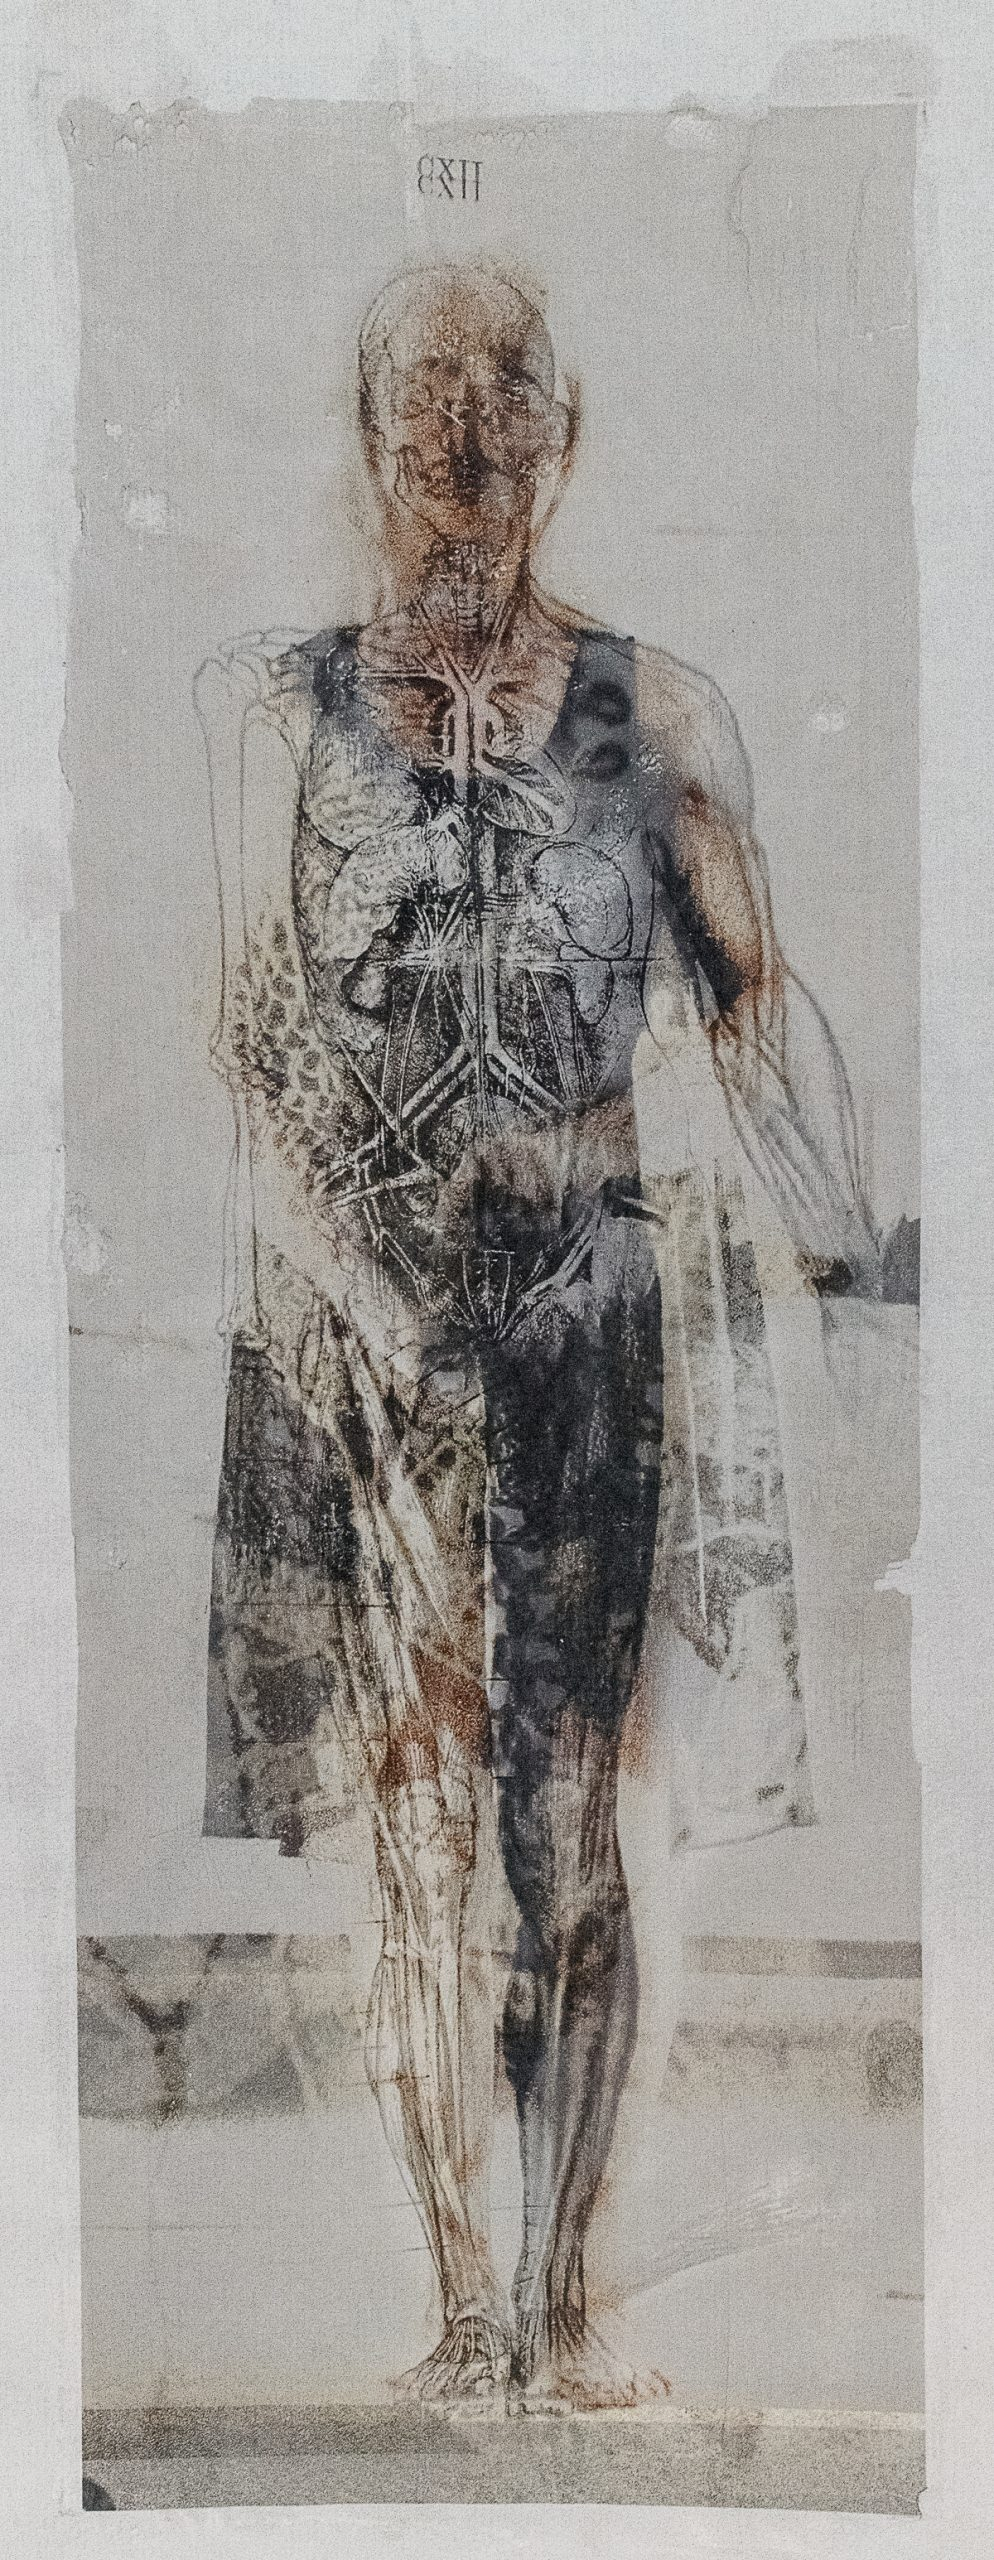 Peggy Taylor Reid, Internal Workings, 2019. Image transfer on washi paper.